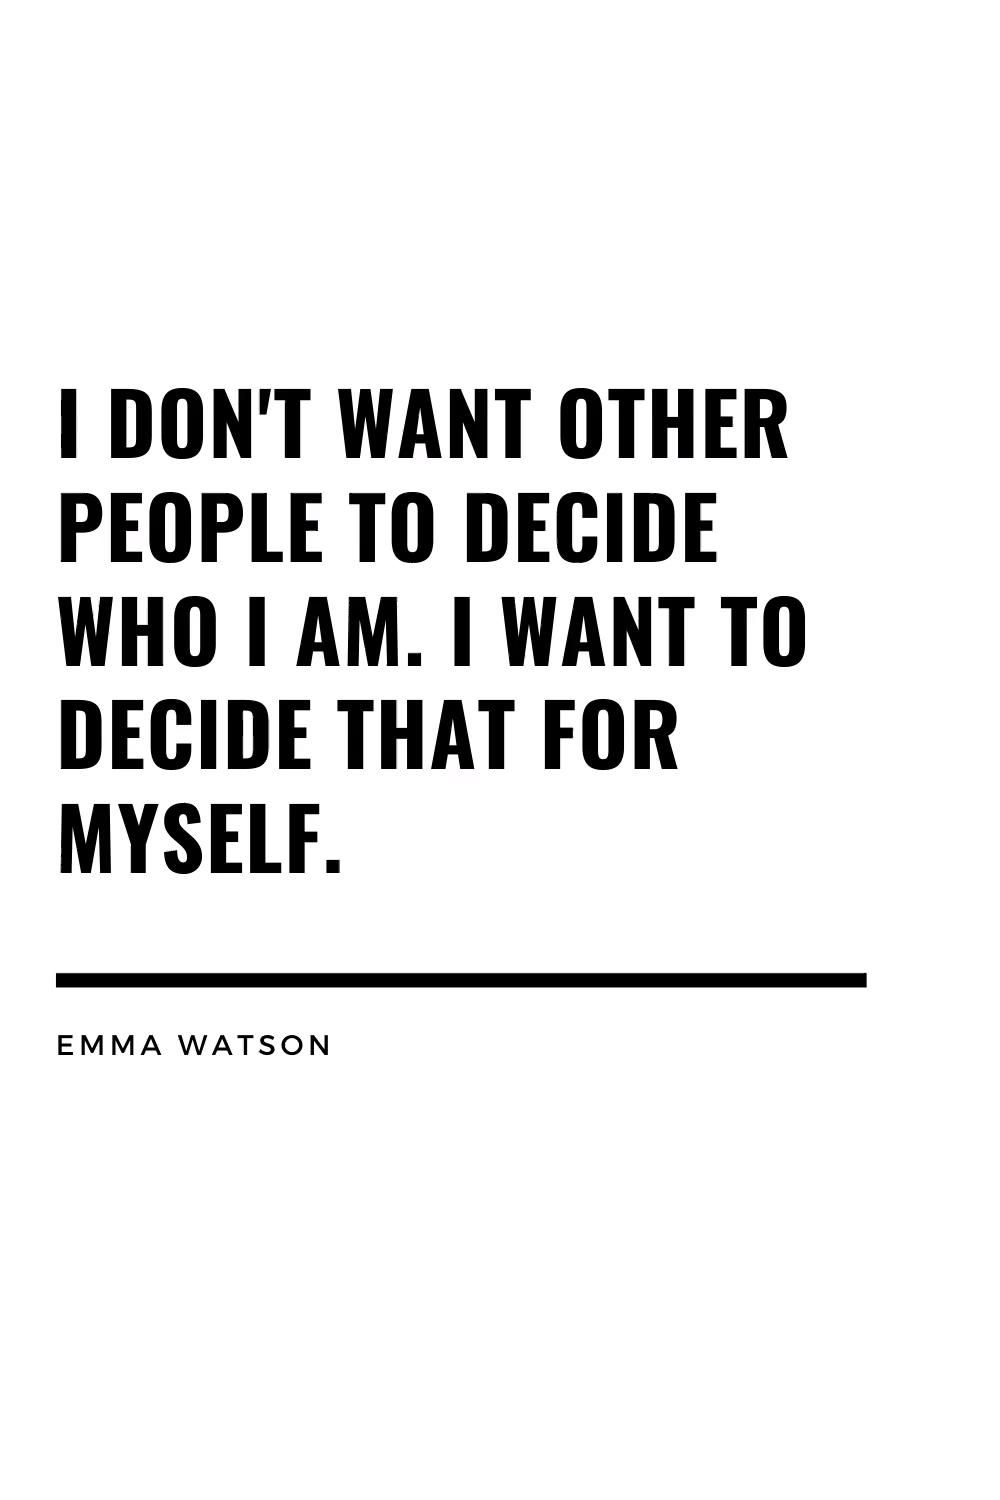 Inspirational Quote About Growth and Empowerment from Emma Watson.